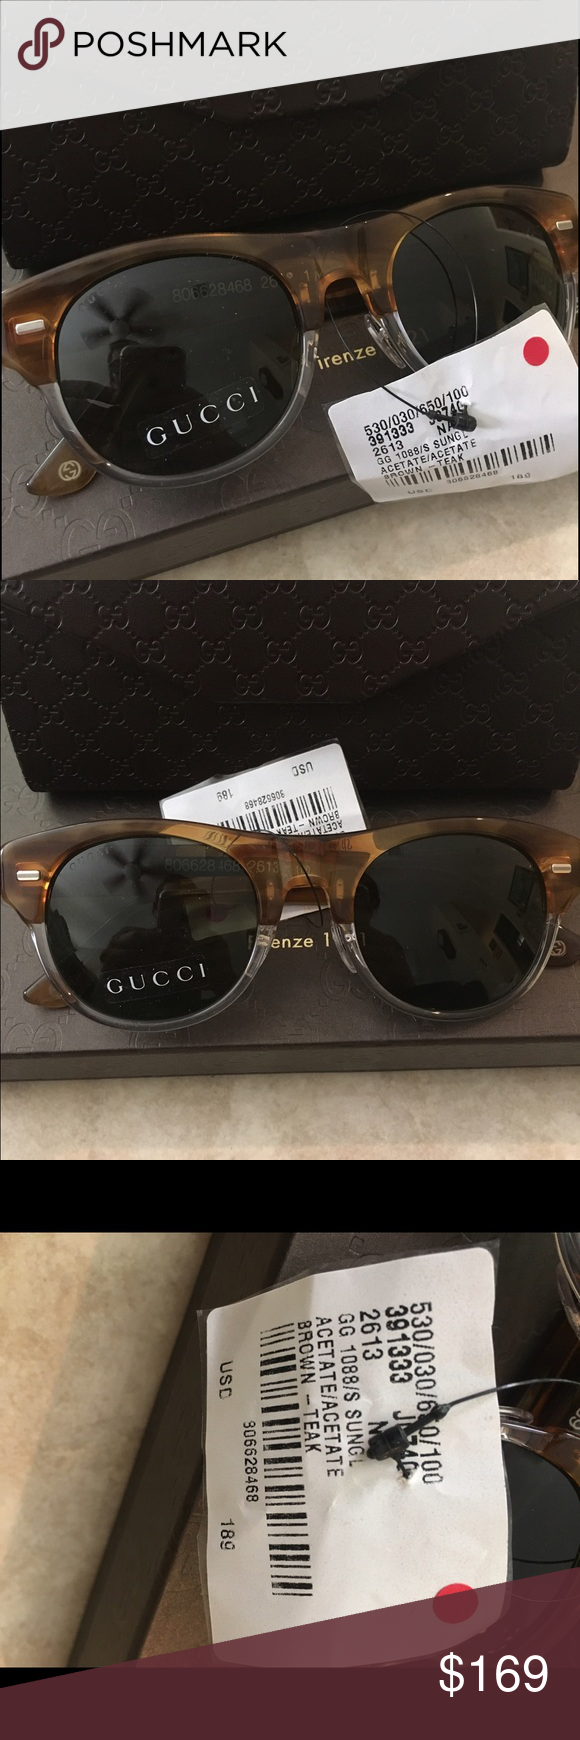 dcd9b02f957a1 Authentic Gucci women s sunglasses w  case Authentic women s Gucci  sunglasses with case. Beautiful sunglasses perfect in time for spring and  summer!